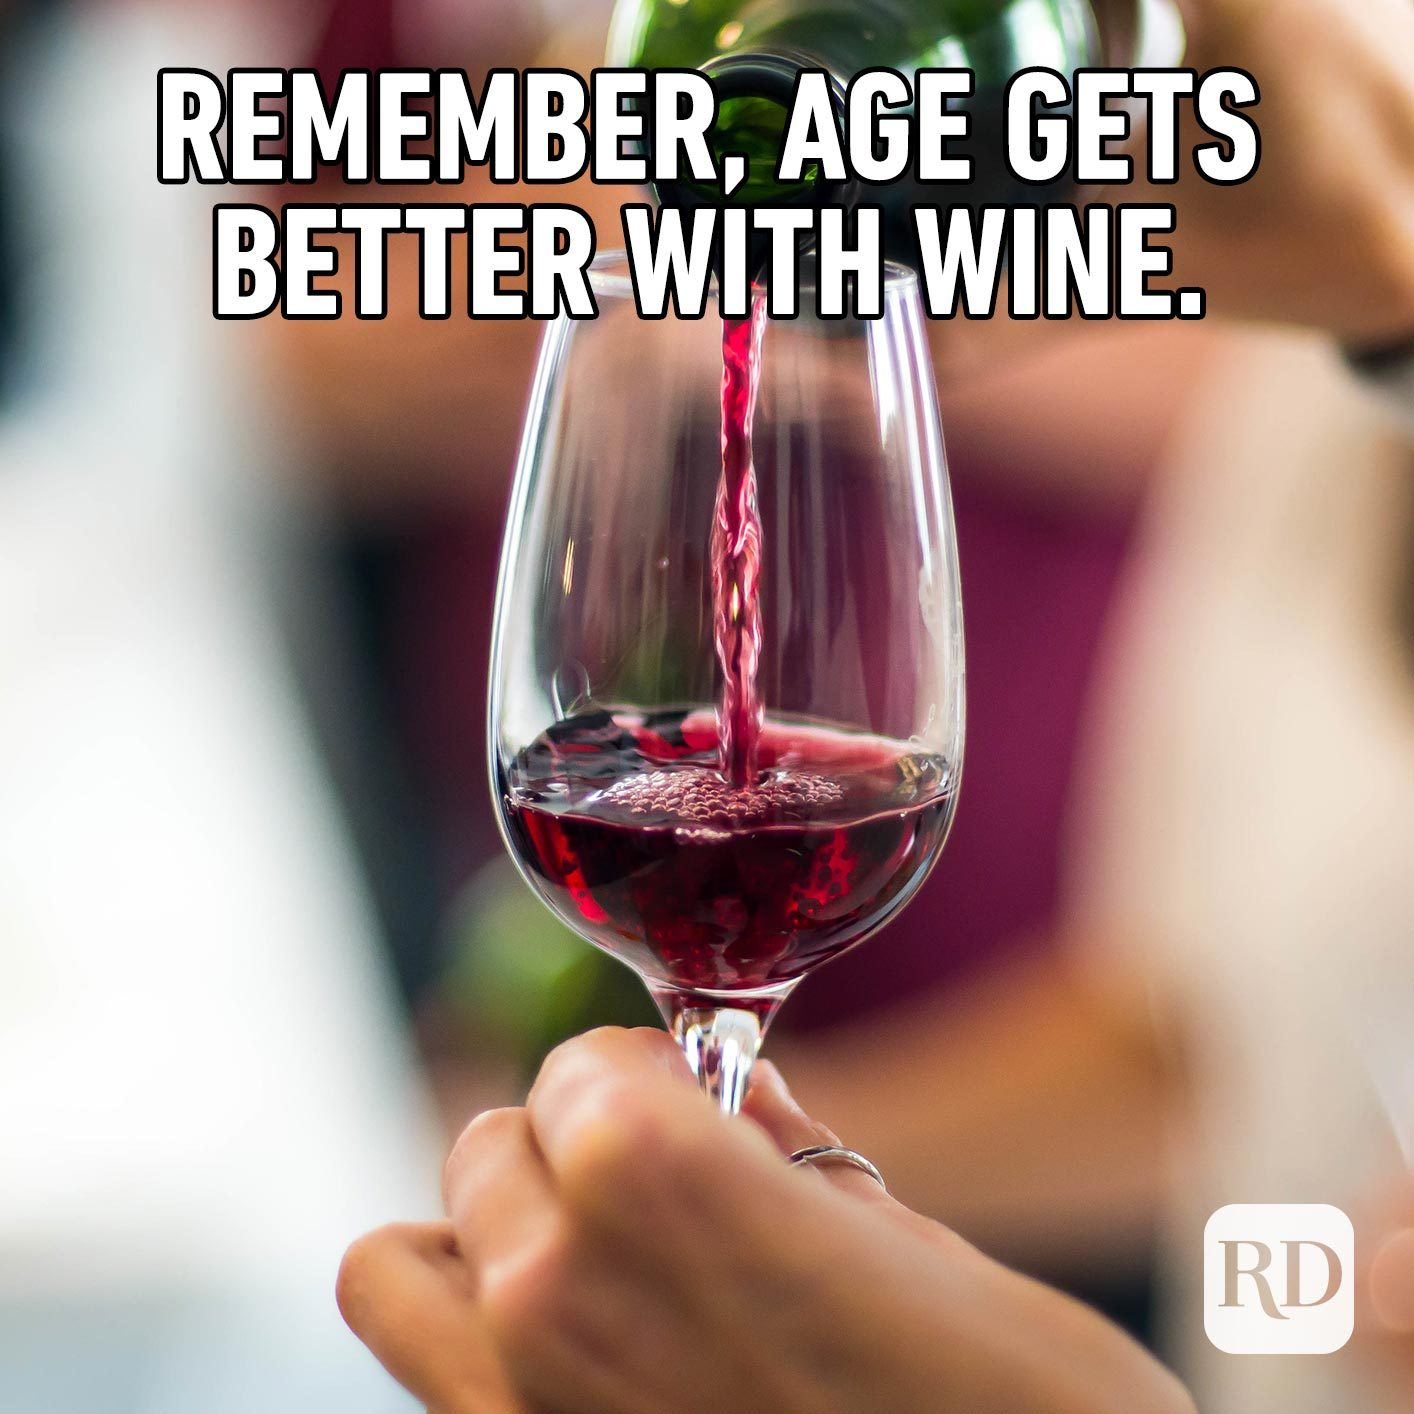 Remember, age gets better with wine.